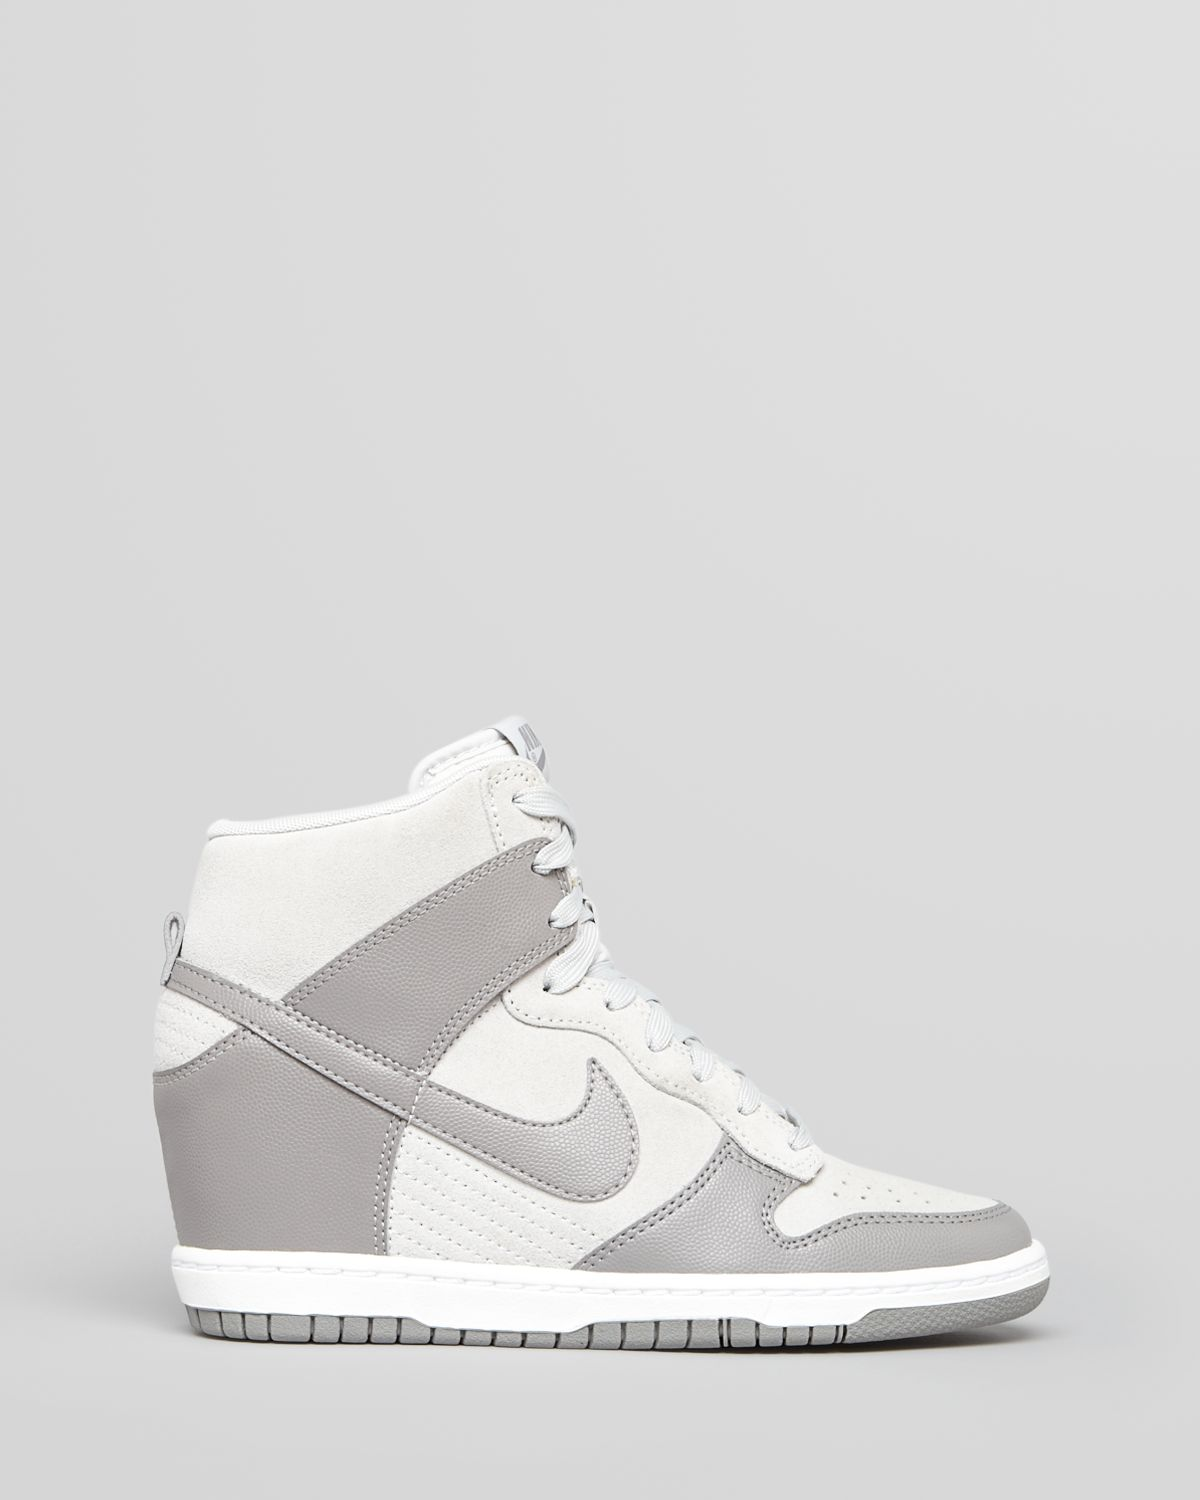 Lyst - Nike High Top Lace Up Sneakers Womens Dunk Sky Hi ...